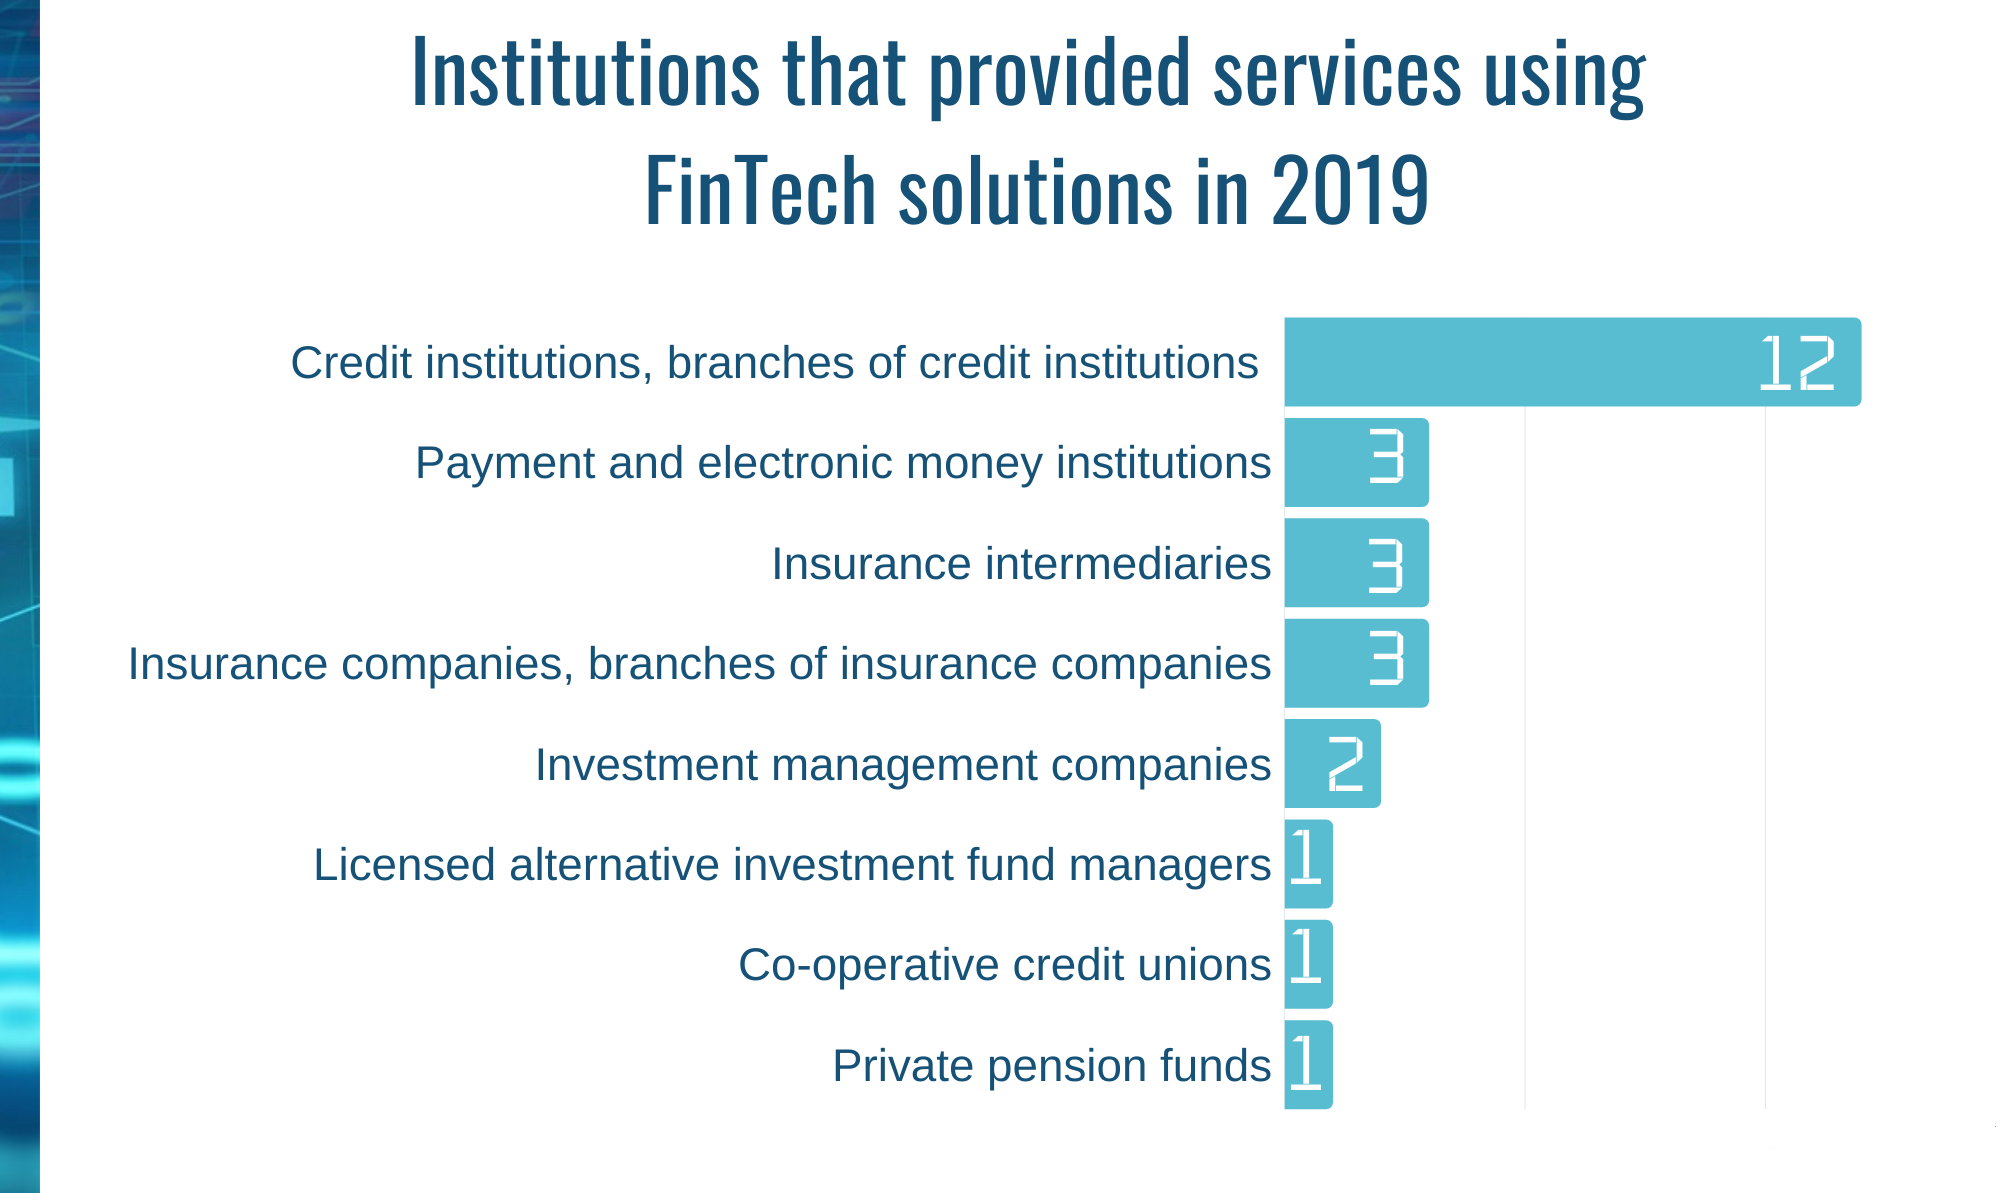 Institutions that provided services using FinTech solutions in 2019